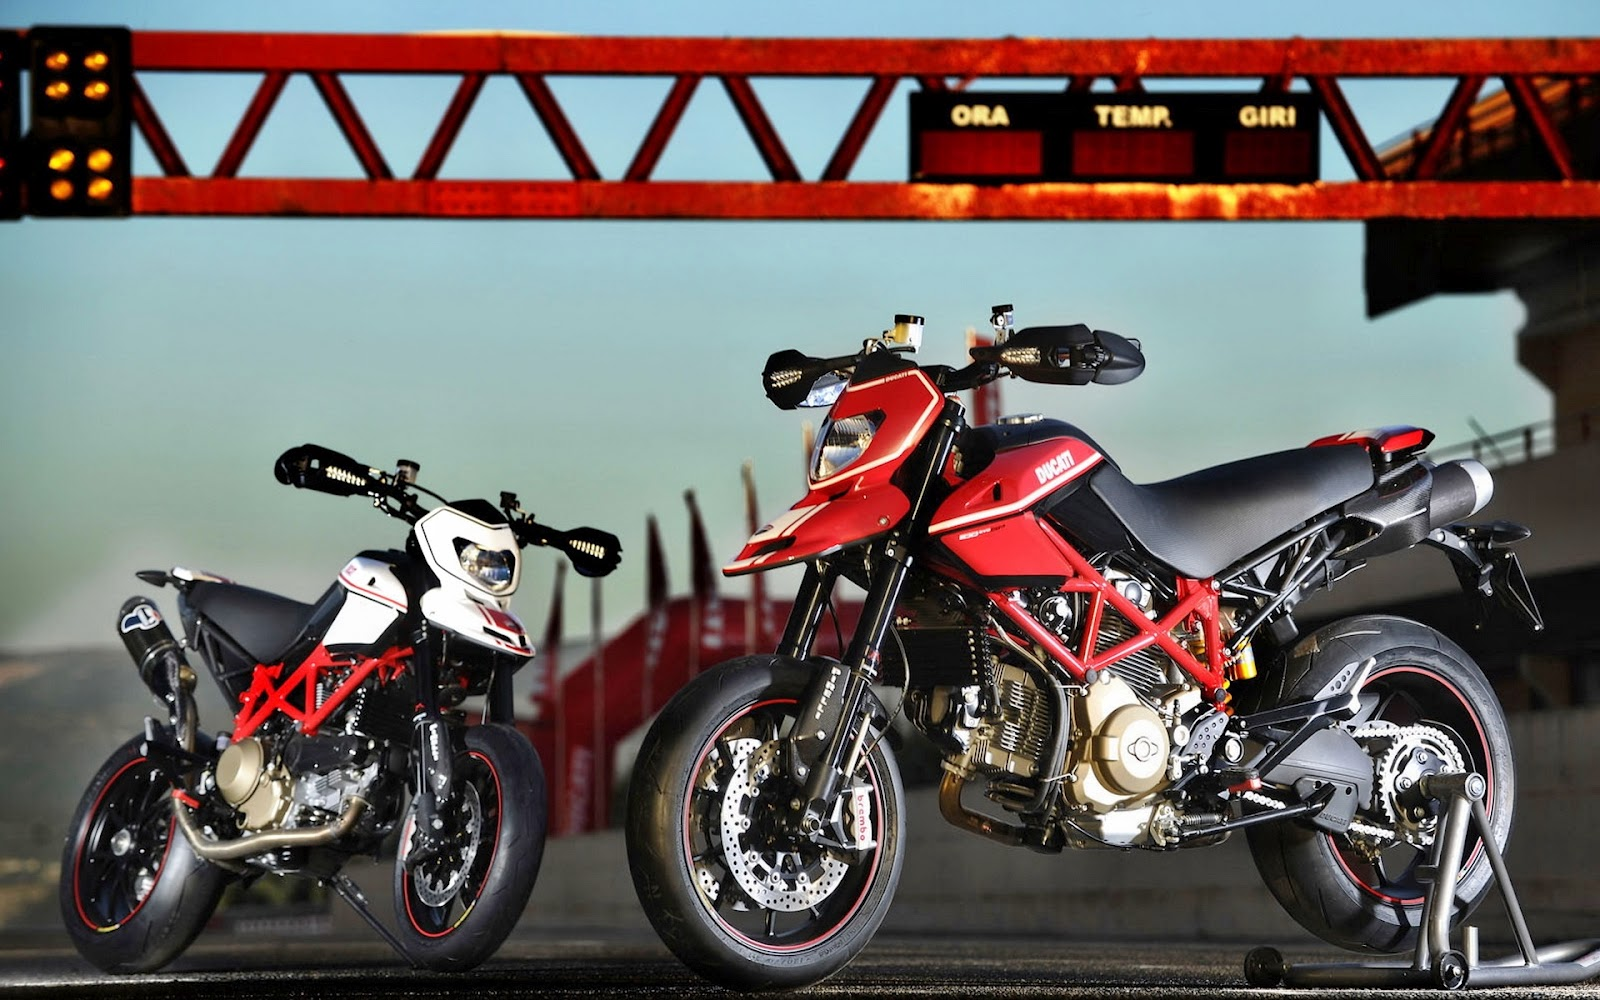 Pics Of Bikes ~ HD Wallpapers And Images For Desktop And